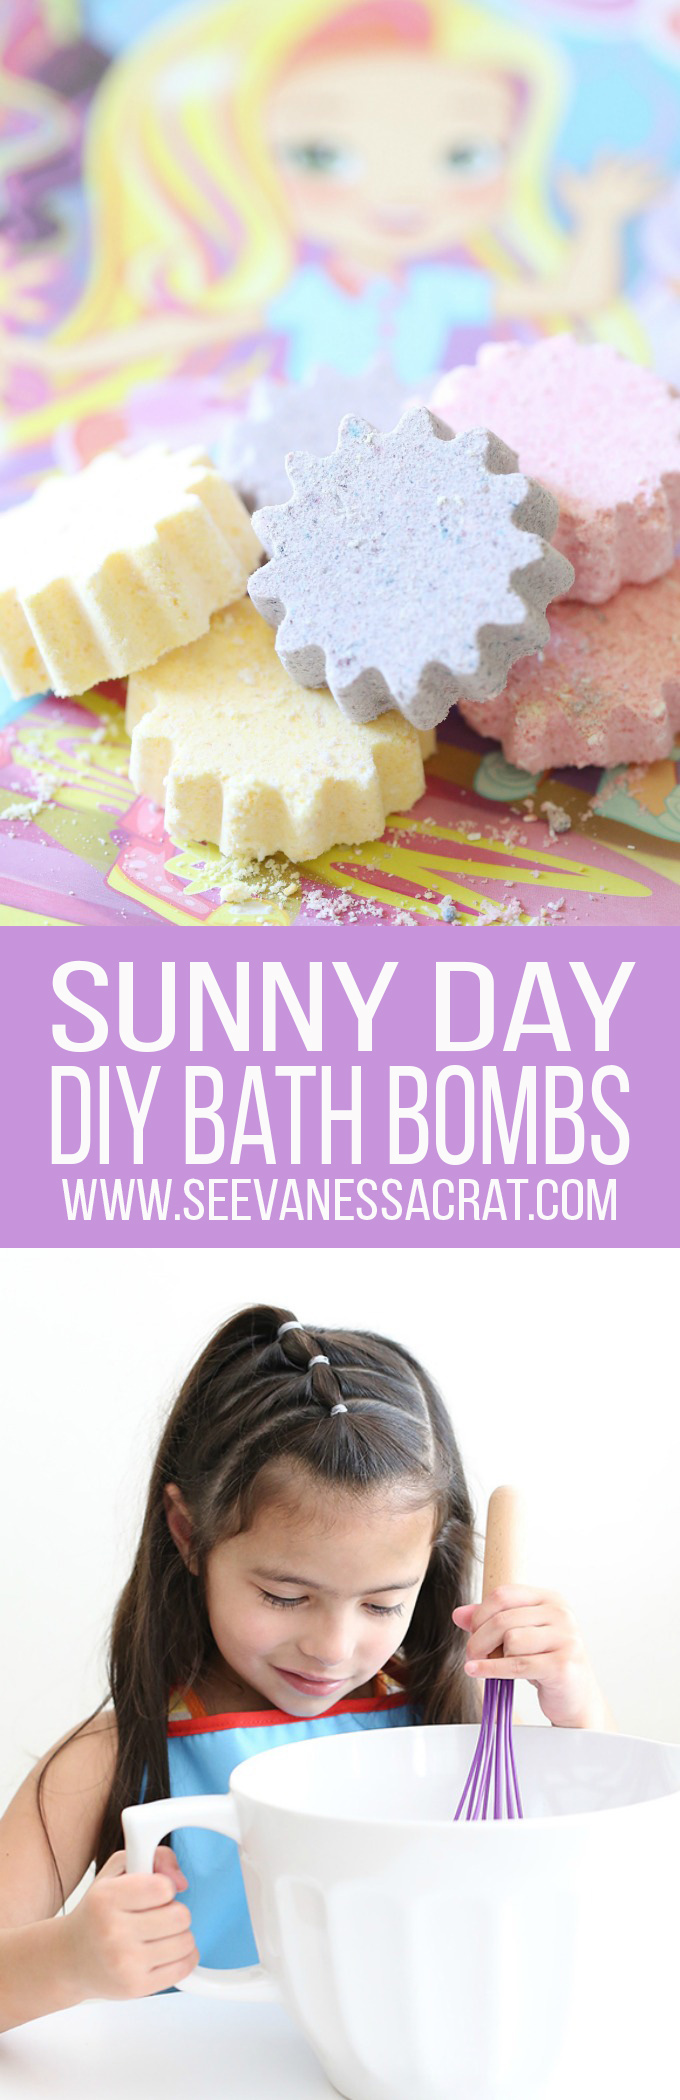 DIY Homemade Sunny Day Bath Bomb Recipe for Kids